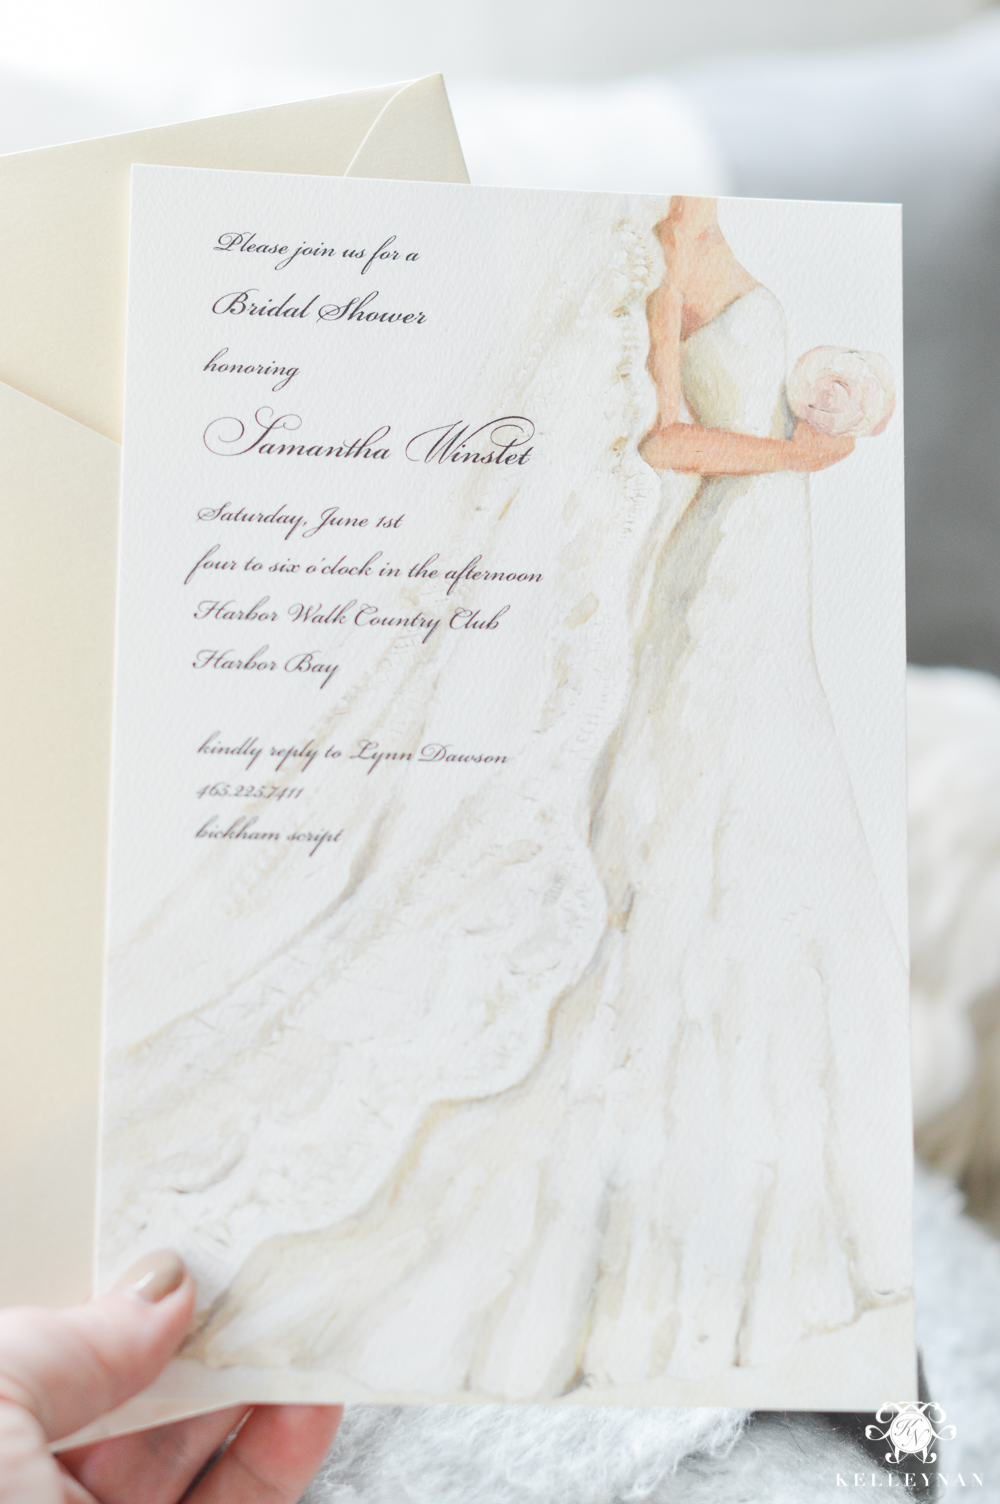 Beautiful Bridal shower invitation ideas